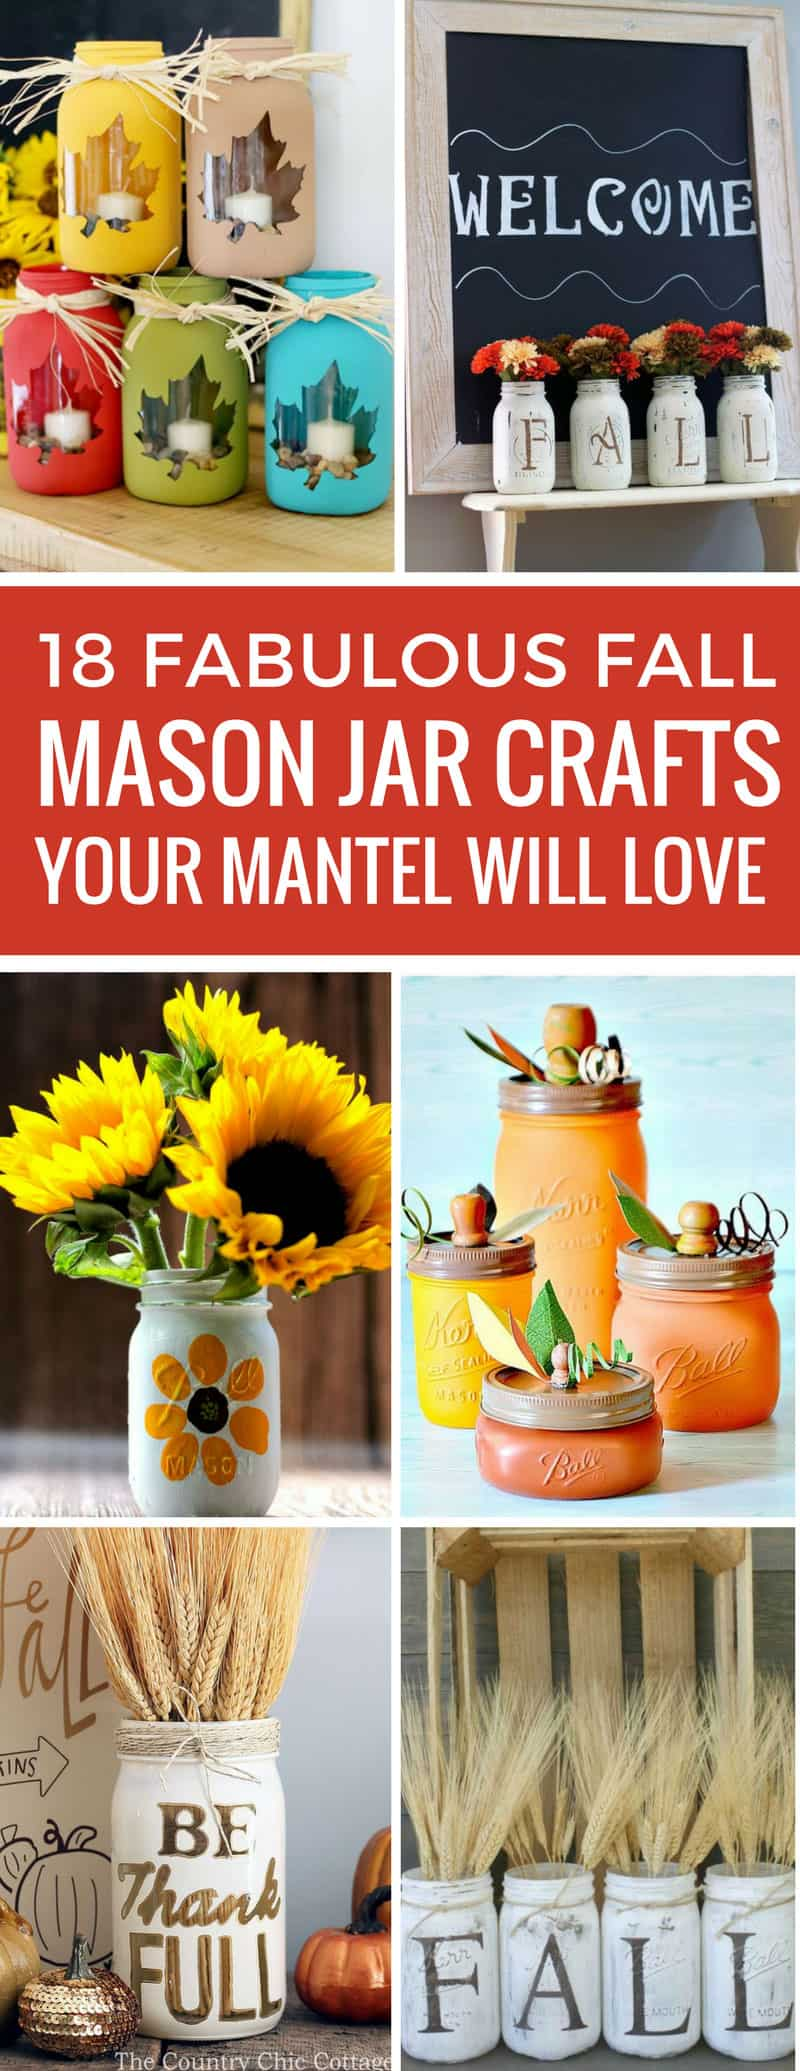 These Fall mason jar craft ideas are gorgeous! I can't wait to decorate my mantel - and add one to my table as a centerpiece! Thanks for sharing!